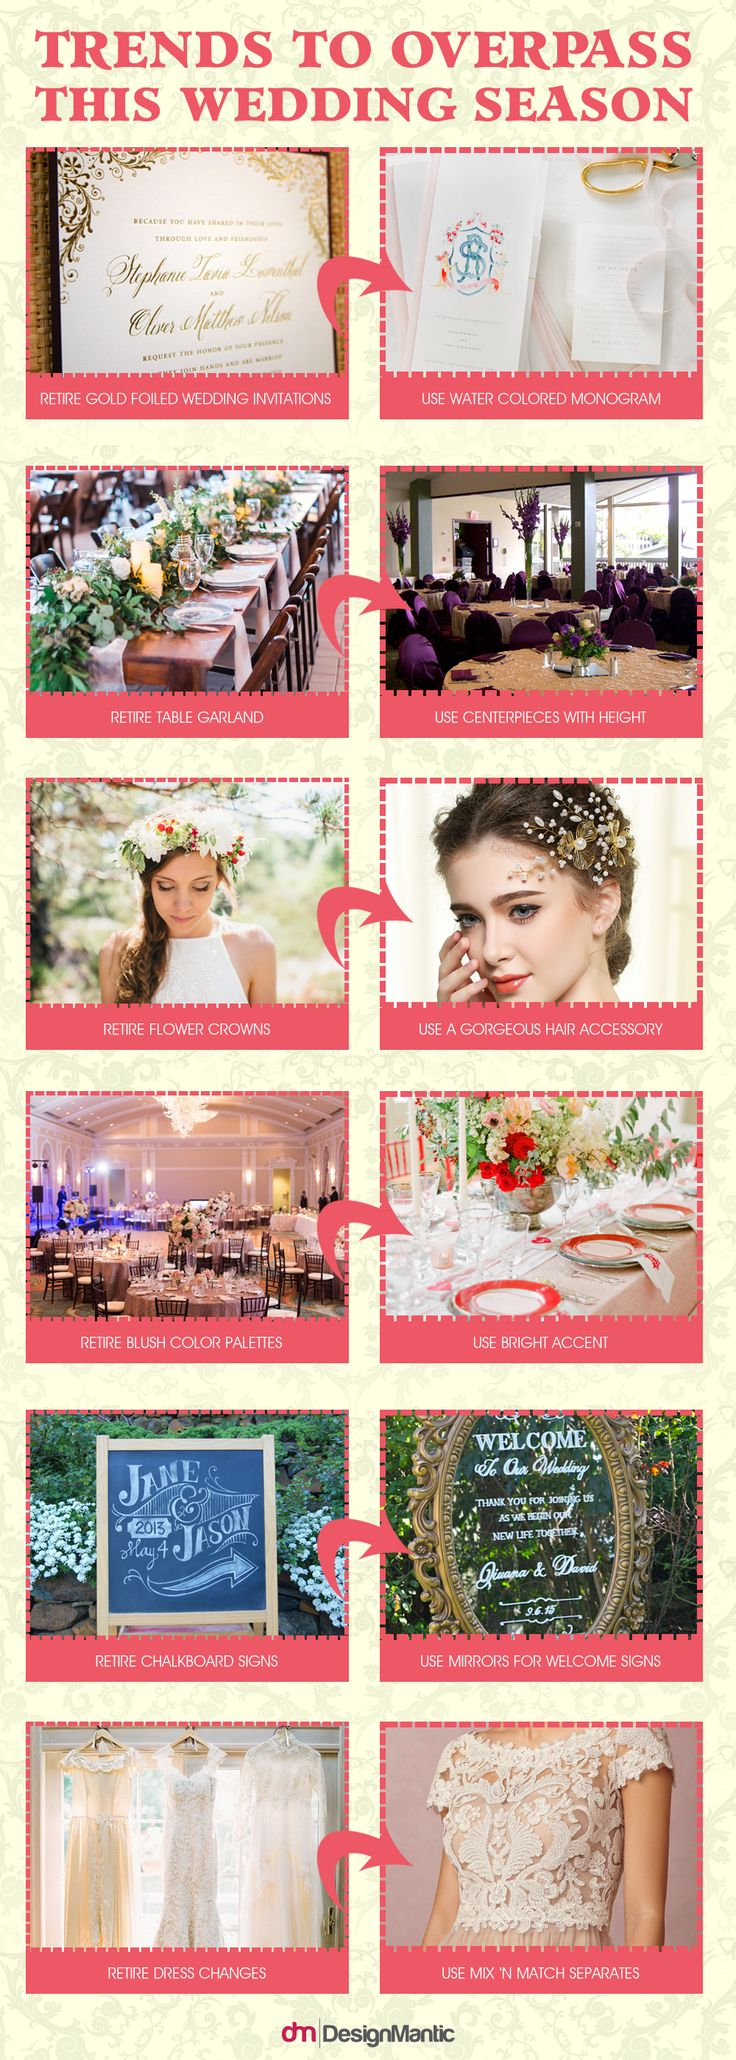 As we usher in the New Year, it's time to bid adieu to some wedding trends that are too overrated and perhaps only look good on Pinterest. We have replaced some retired trends with fresh and practical ones!